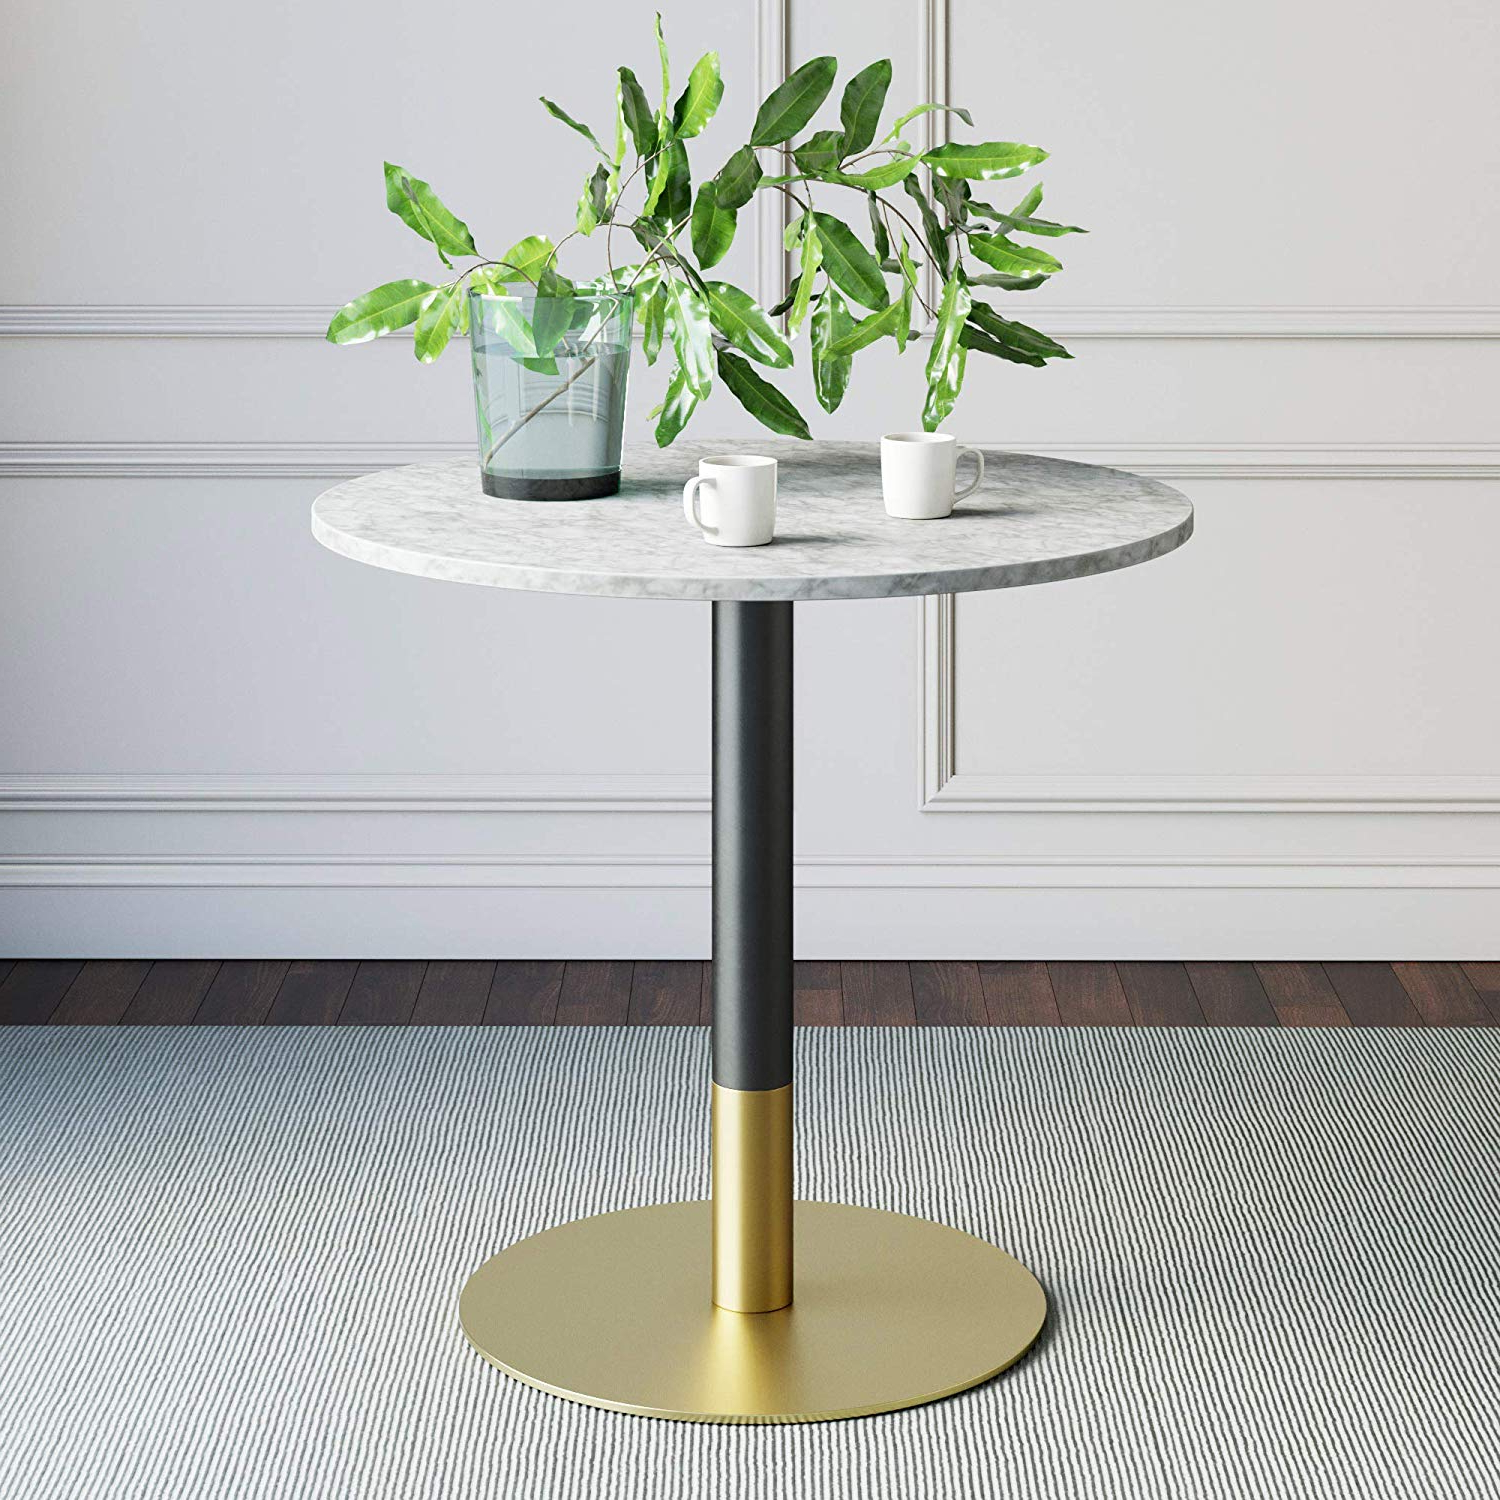 Best And Newest Nathan James 42002 Lucy Small Mid Century Modern Kitchen Or Dining Table  With Faux Carrara Marble Top And Brushed Metal Pedestal Base, White/gold Intended For Lucy Bar Height Dining Tables (View 4 of 25)